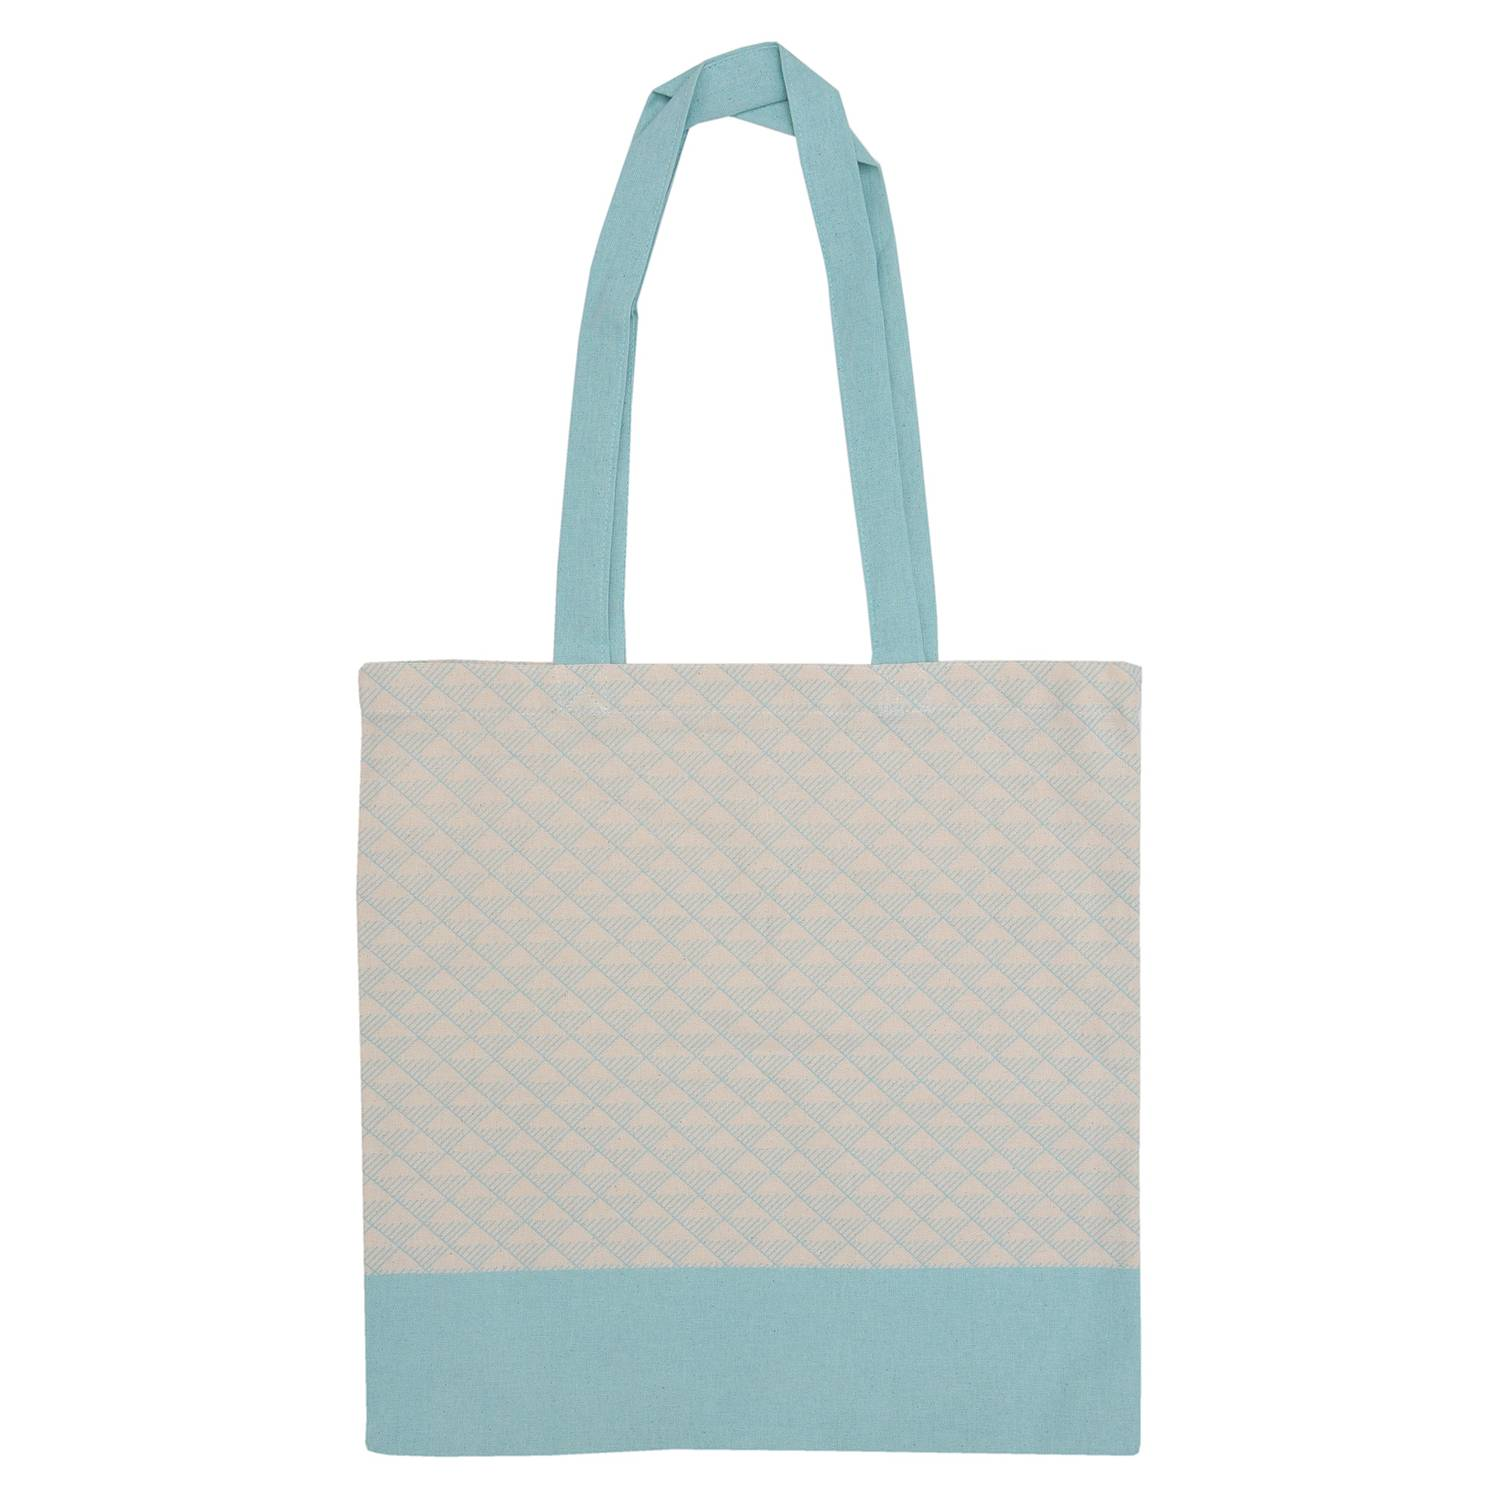 Ally Tote Bag